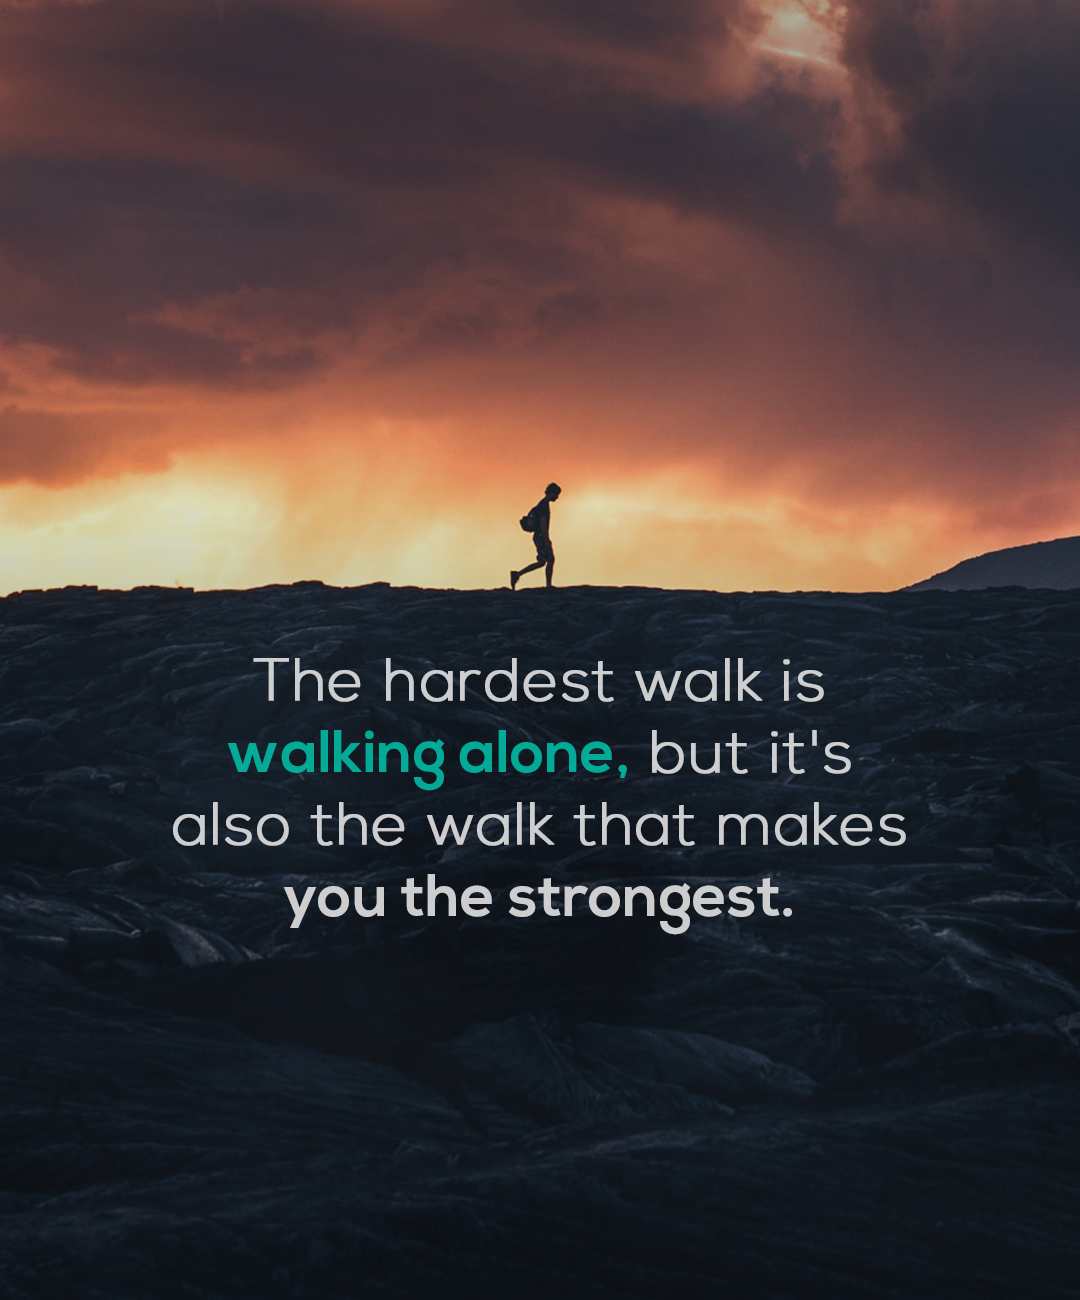 """The hardest walk is walking alone, but it's also the walk that makes you the strongest."" -Anonymous [1800×1300]"